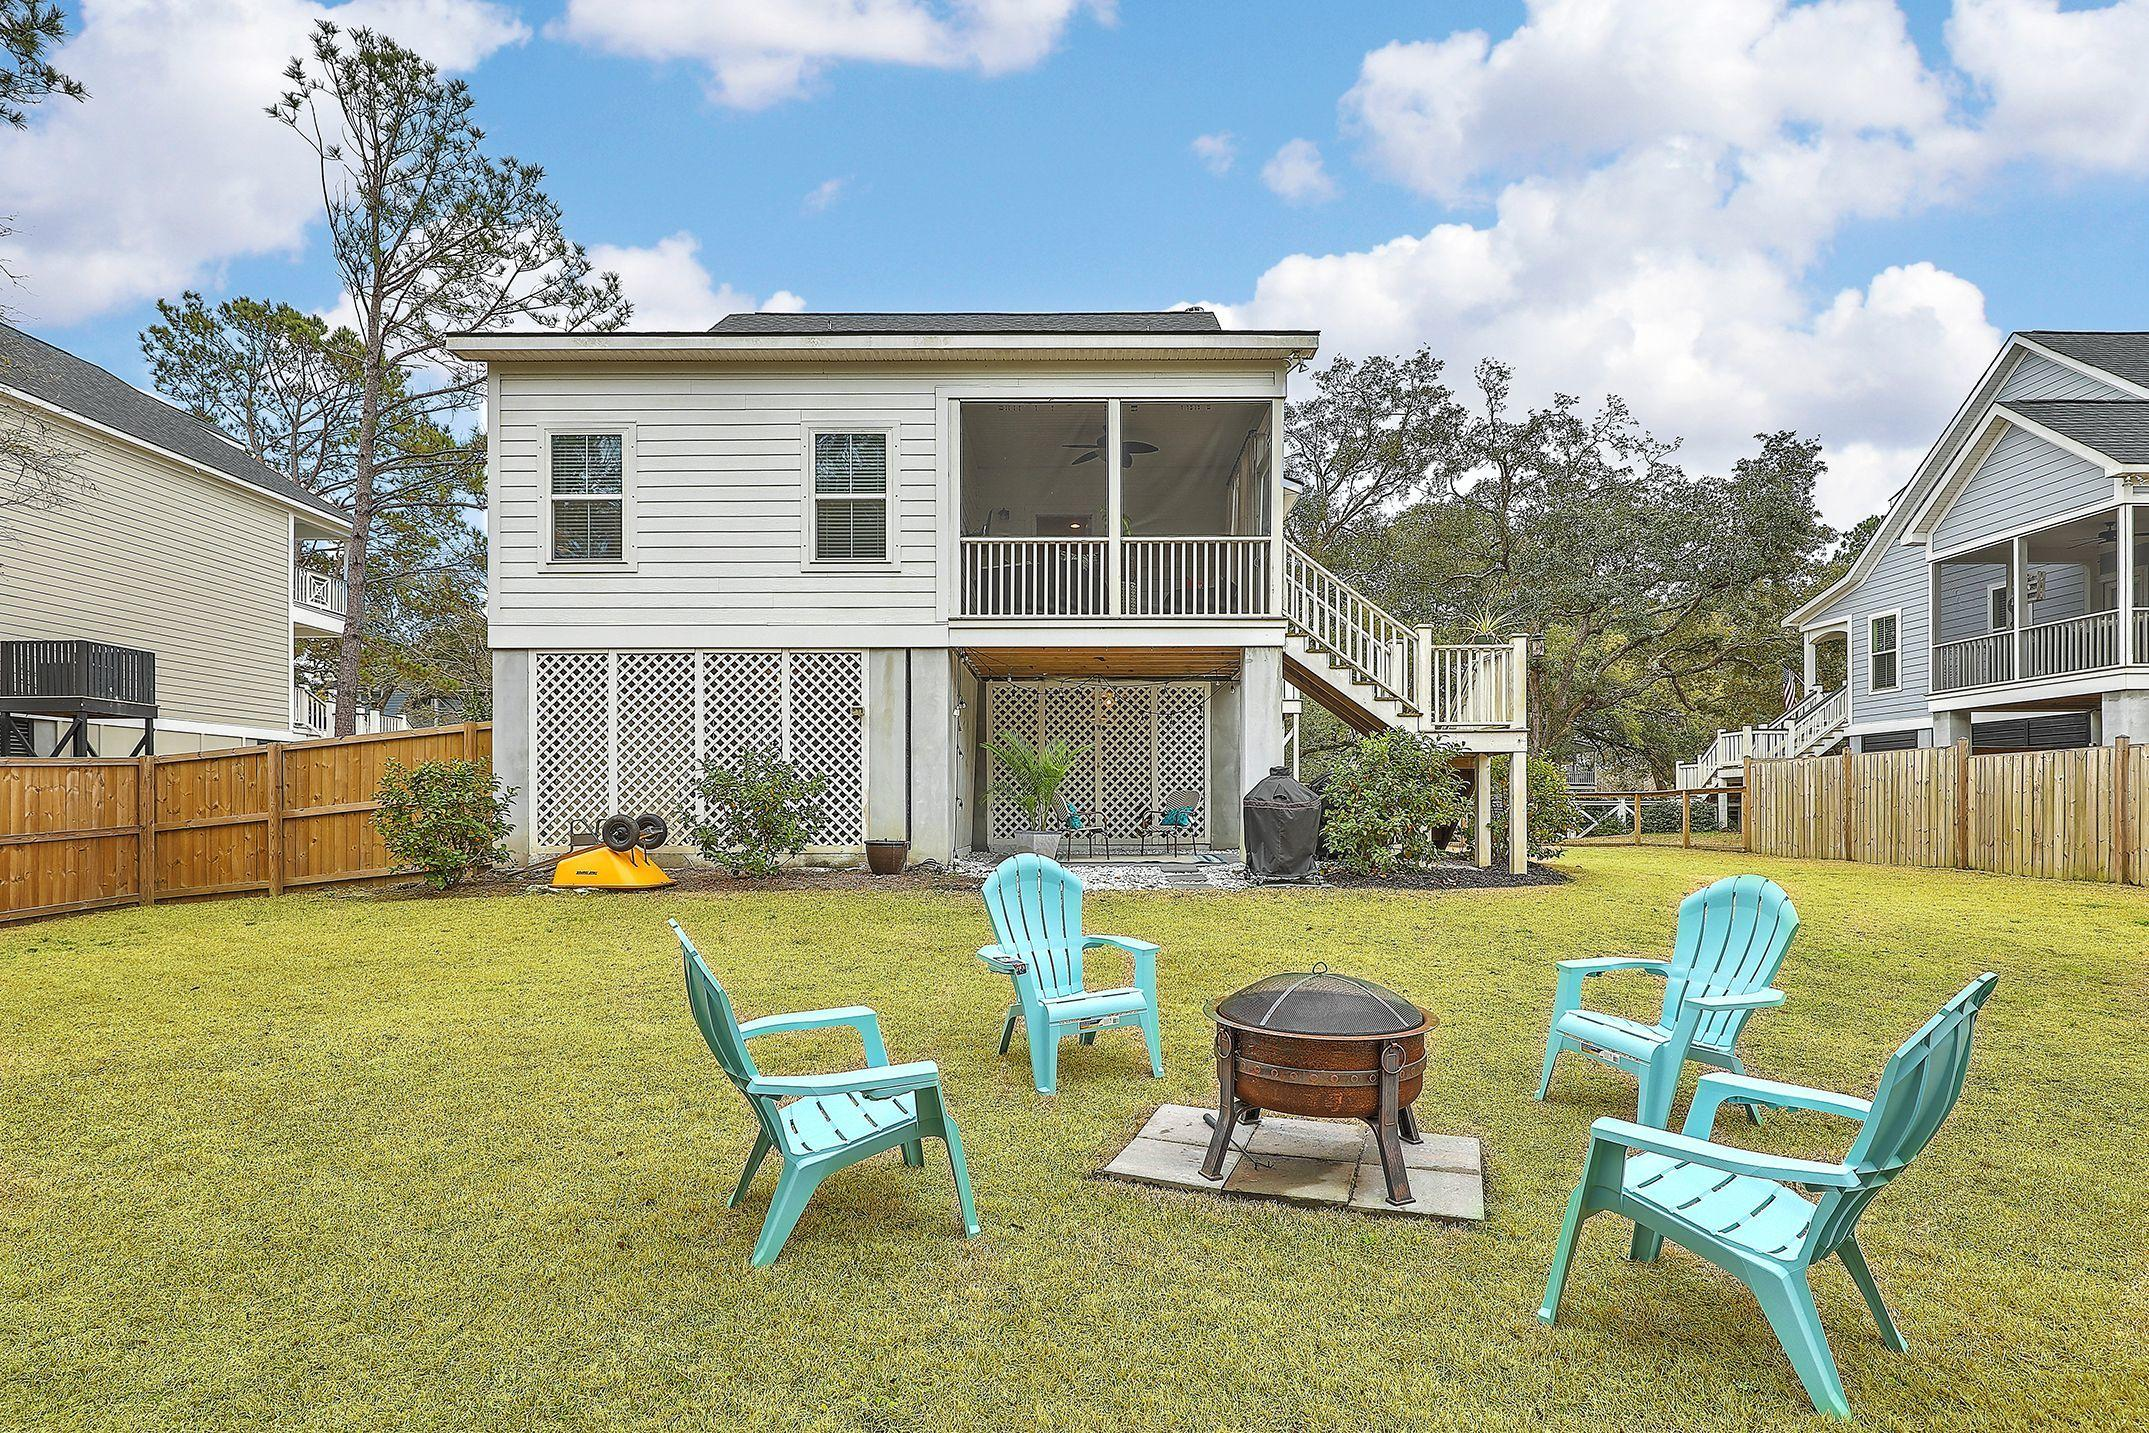 Cottages on Periwinkle Homes For Sale - 1634 Periwinkle, Mount Pleasant, SC - 5